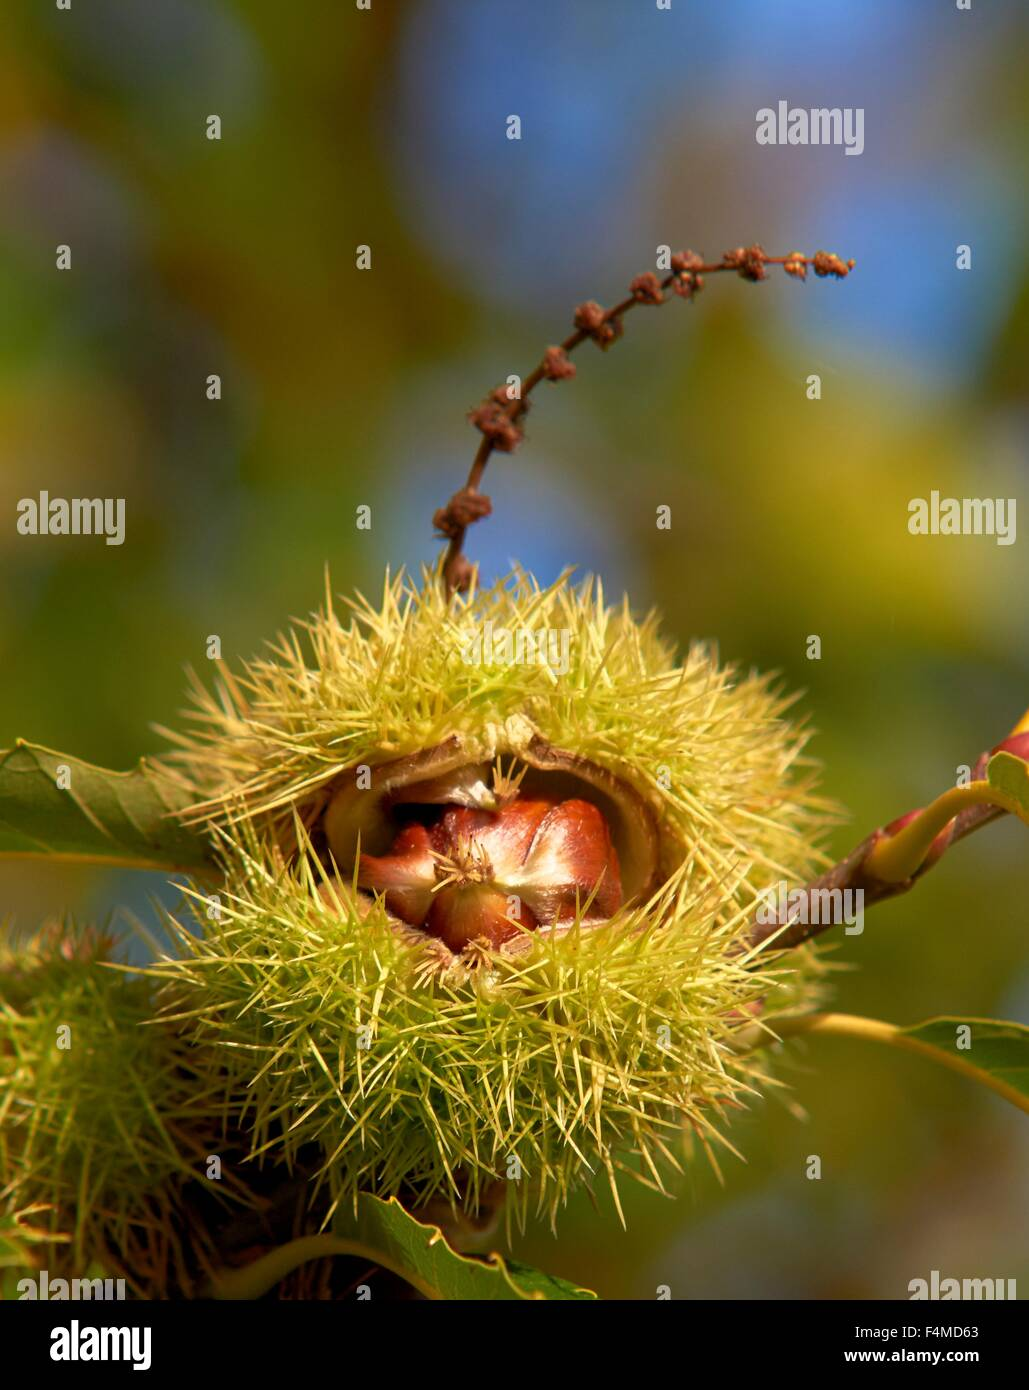 Horse chestnut tree - Stock Image